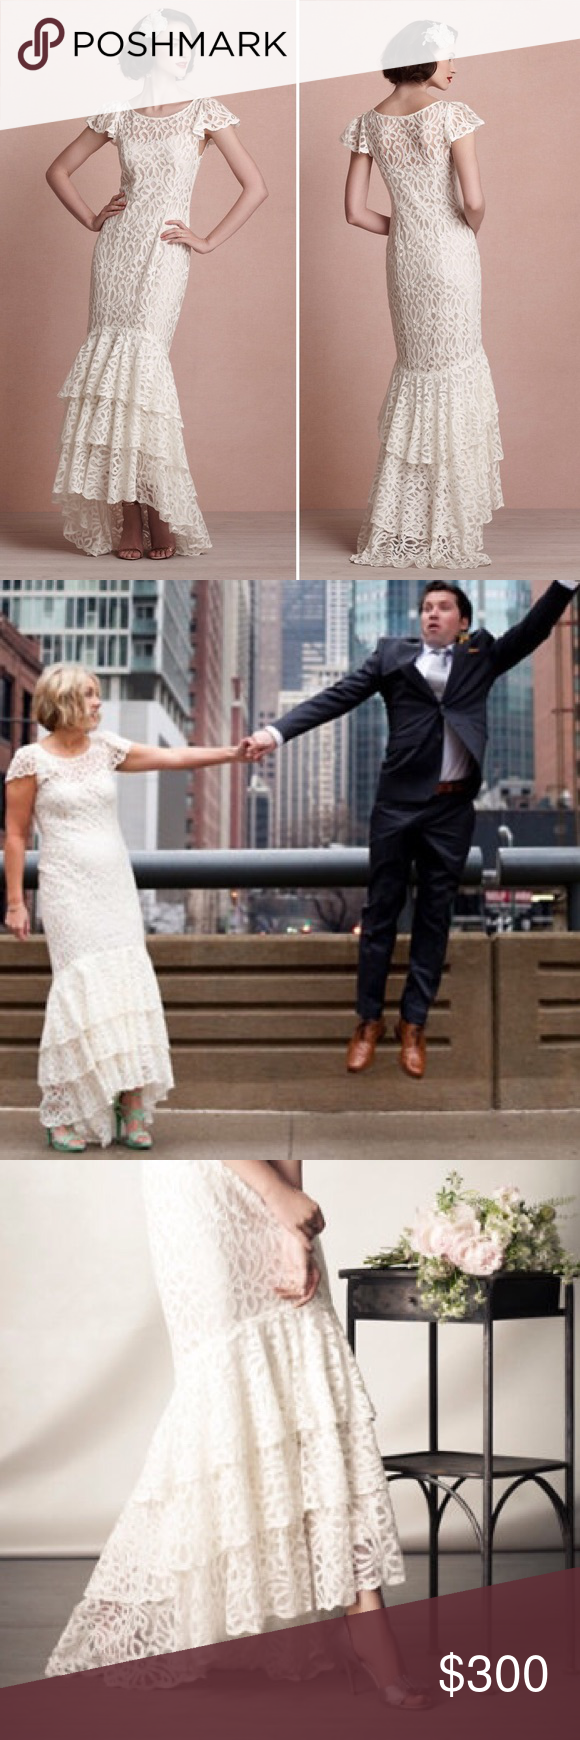 Lace wedding dress under 300  LIKE NEW HighLow Lace Wedding Dress from BHLDN My twin sister wore